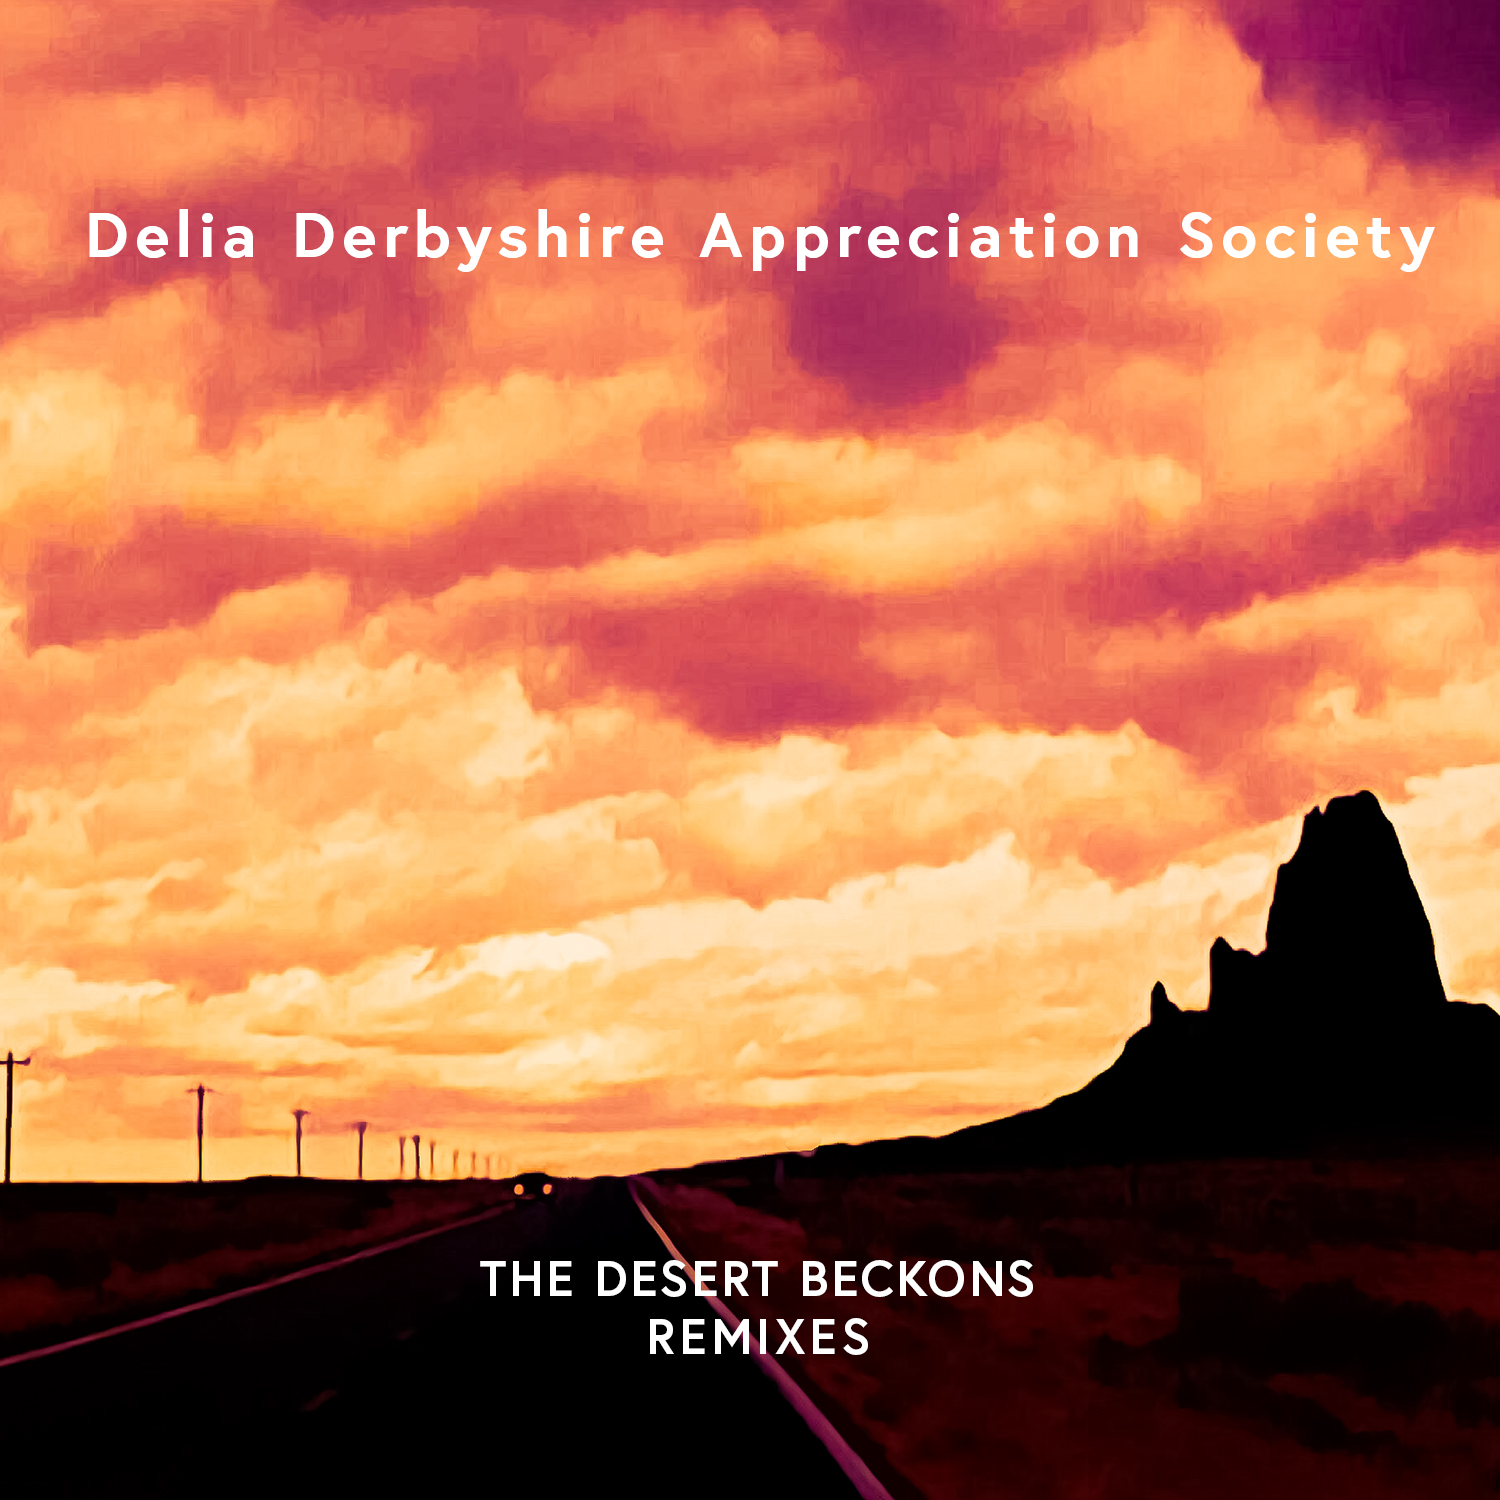 Delia Derbyshire Appreciation Society – The Desert Beckons Remixes